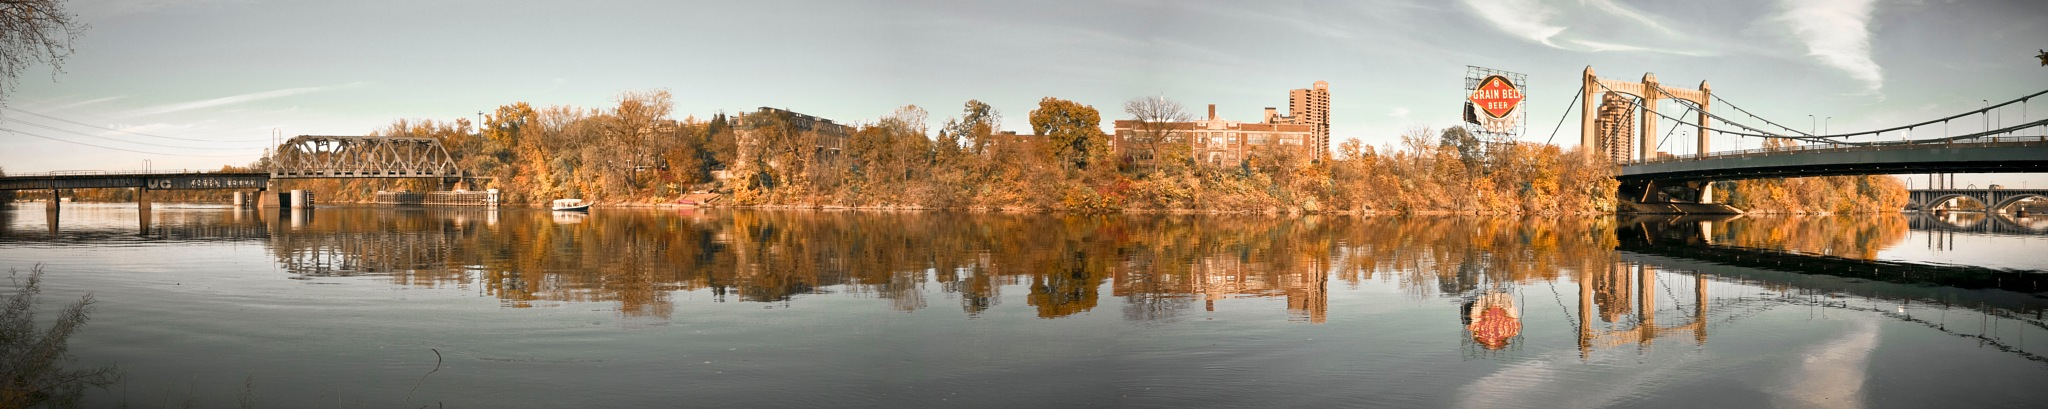 Nicollet Island - Minneapolis, MN by Robert Henry